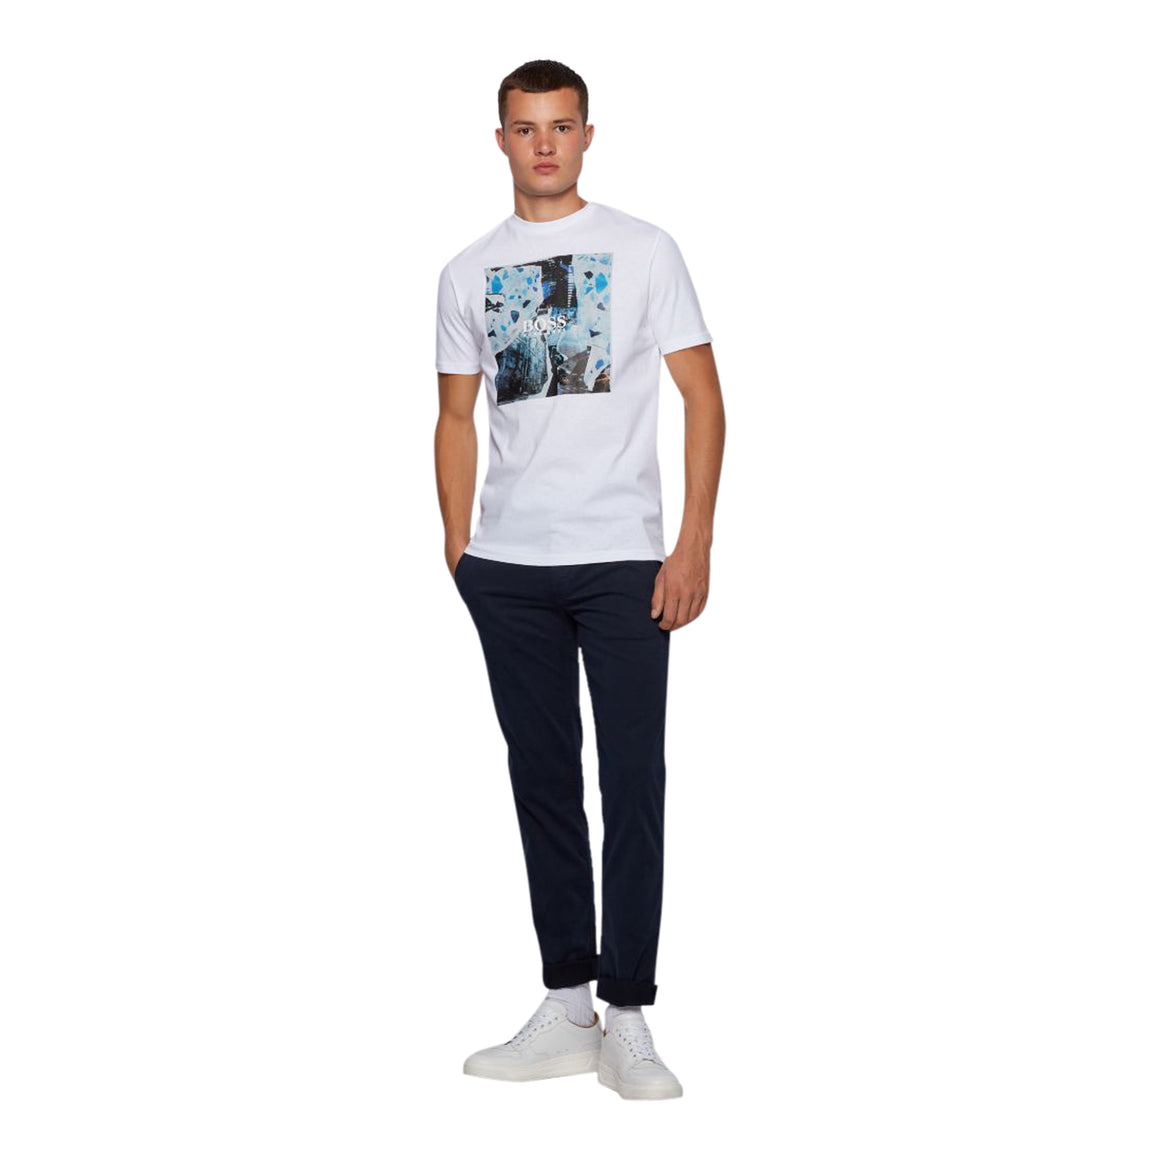 Tomio 5 Graphic Tee for Men in White